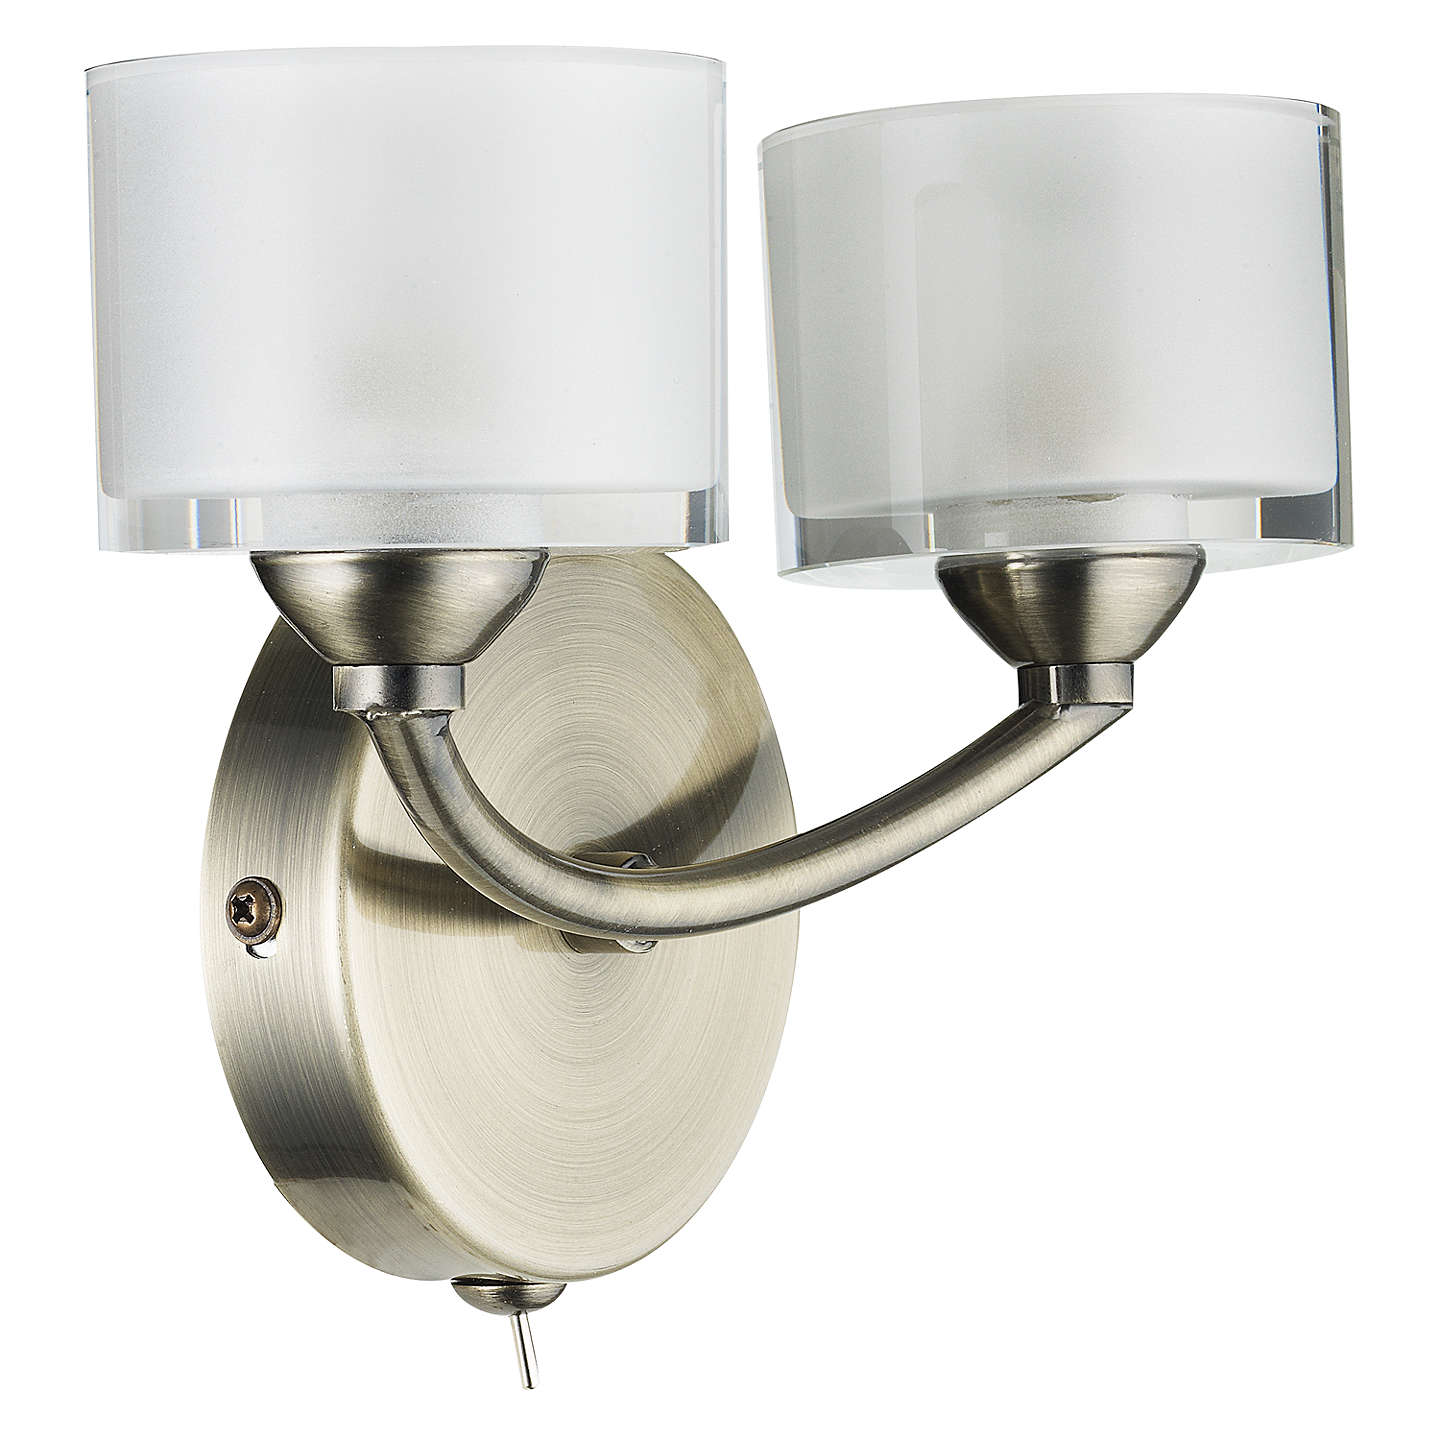 John lewis paige double wall light at john lewis buyjohn lewis paige double wall light antique brass online at johnlewis mozeypictures Images